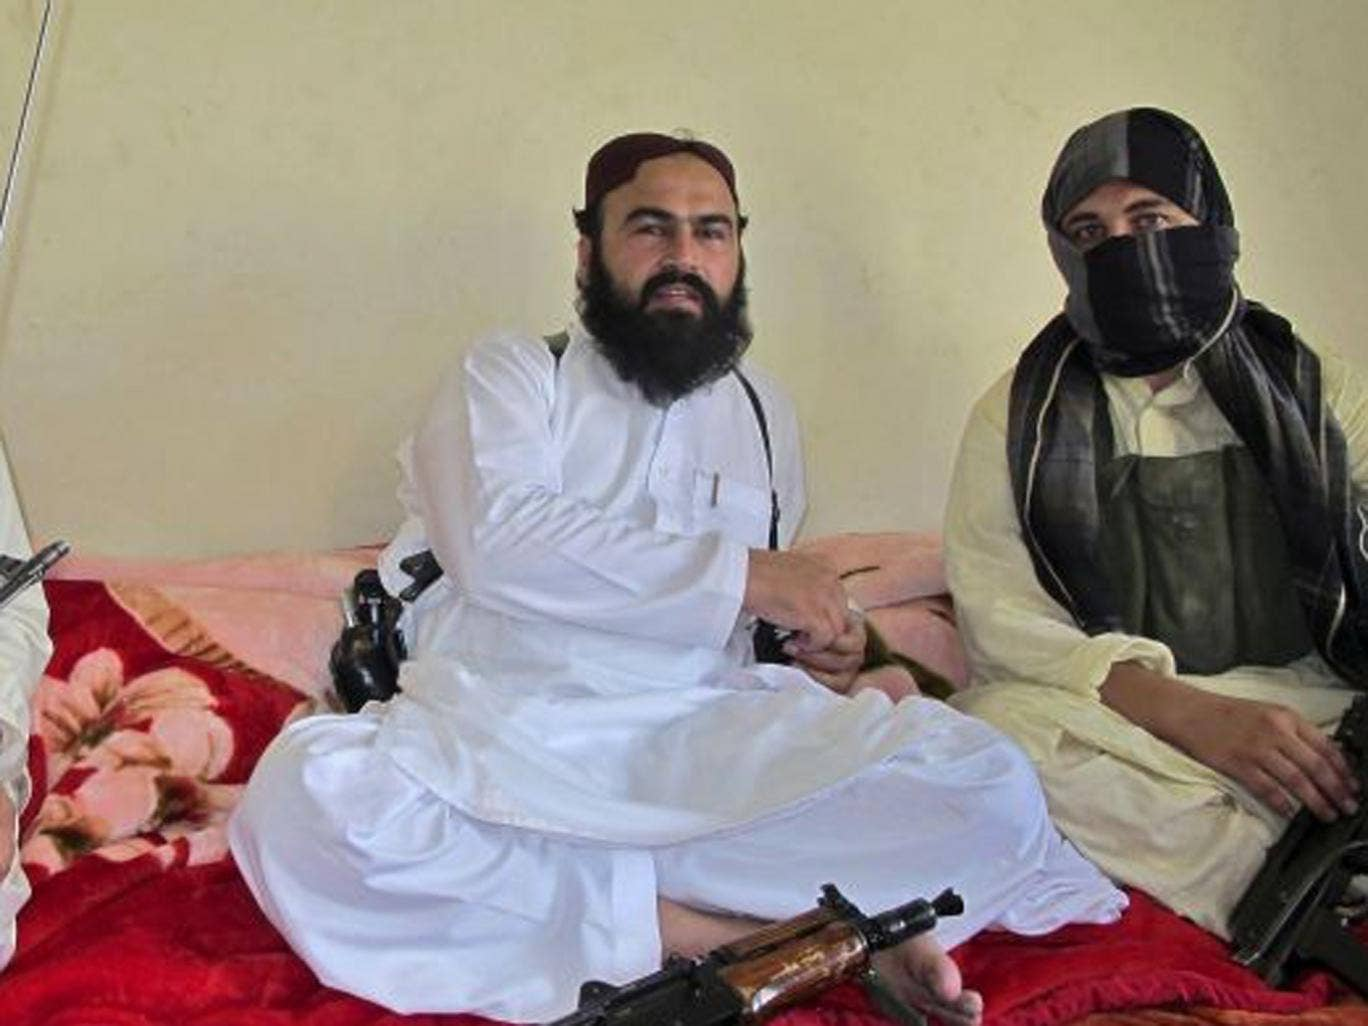 Deputy Pakistani Taliban leader Wali-ur-Rehman, left, is reported to be among the dead